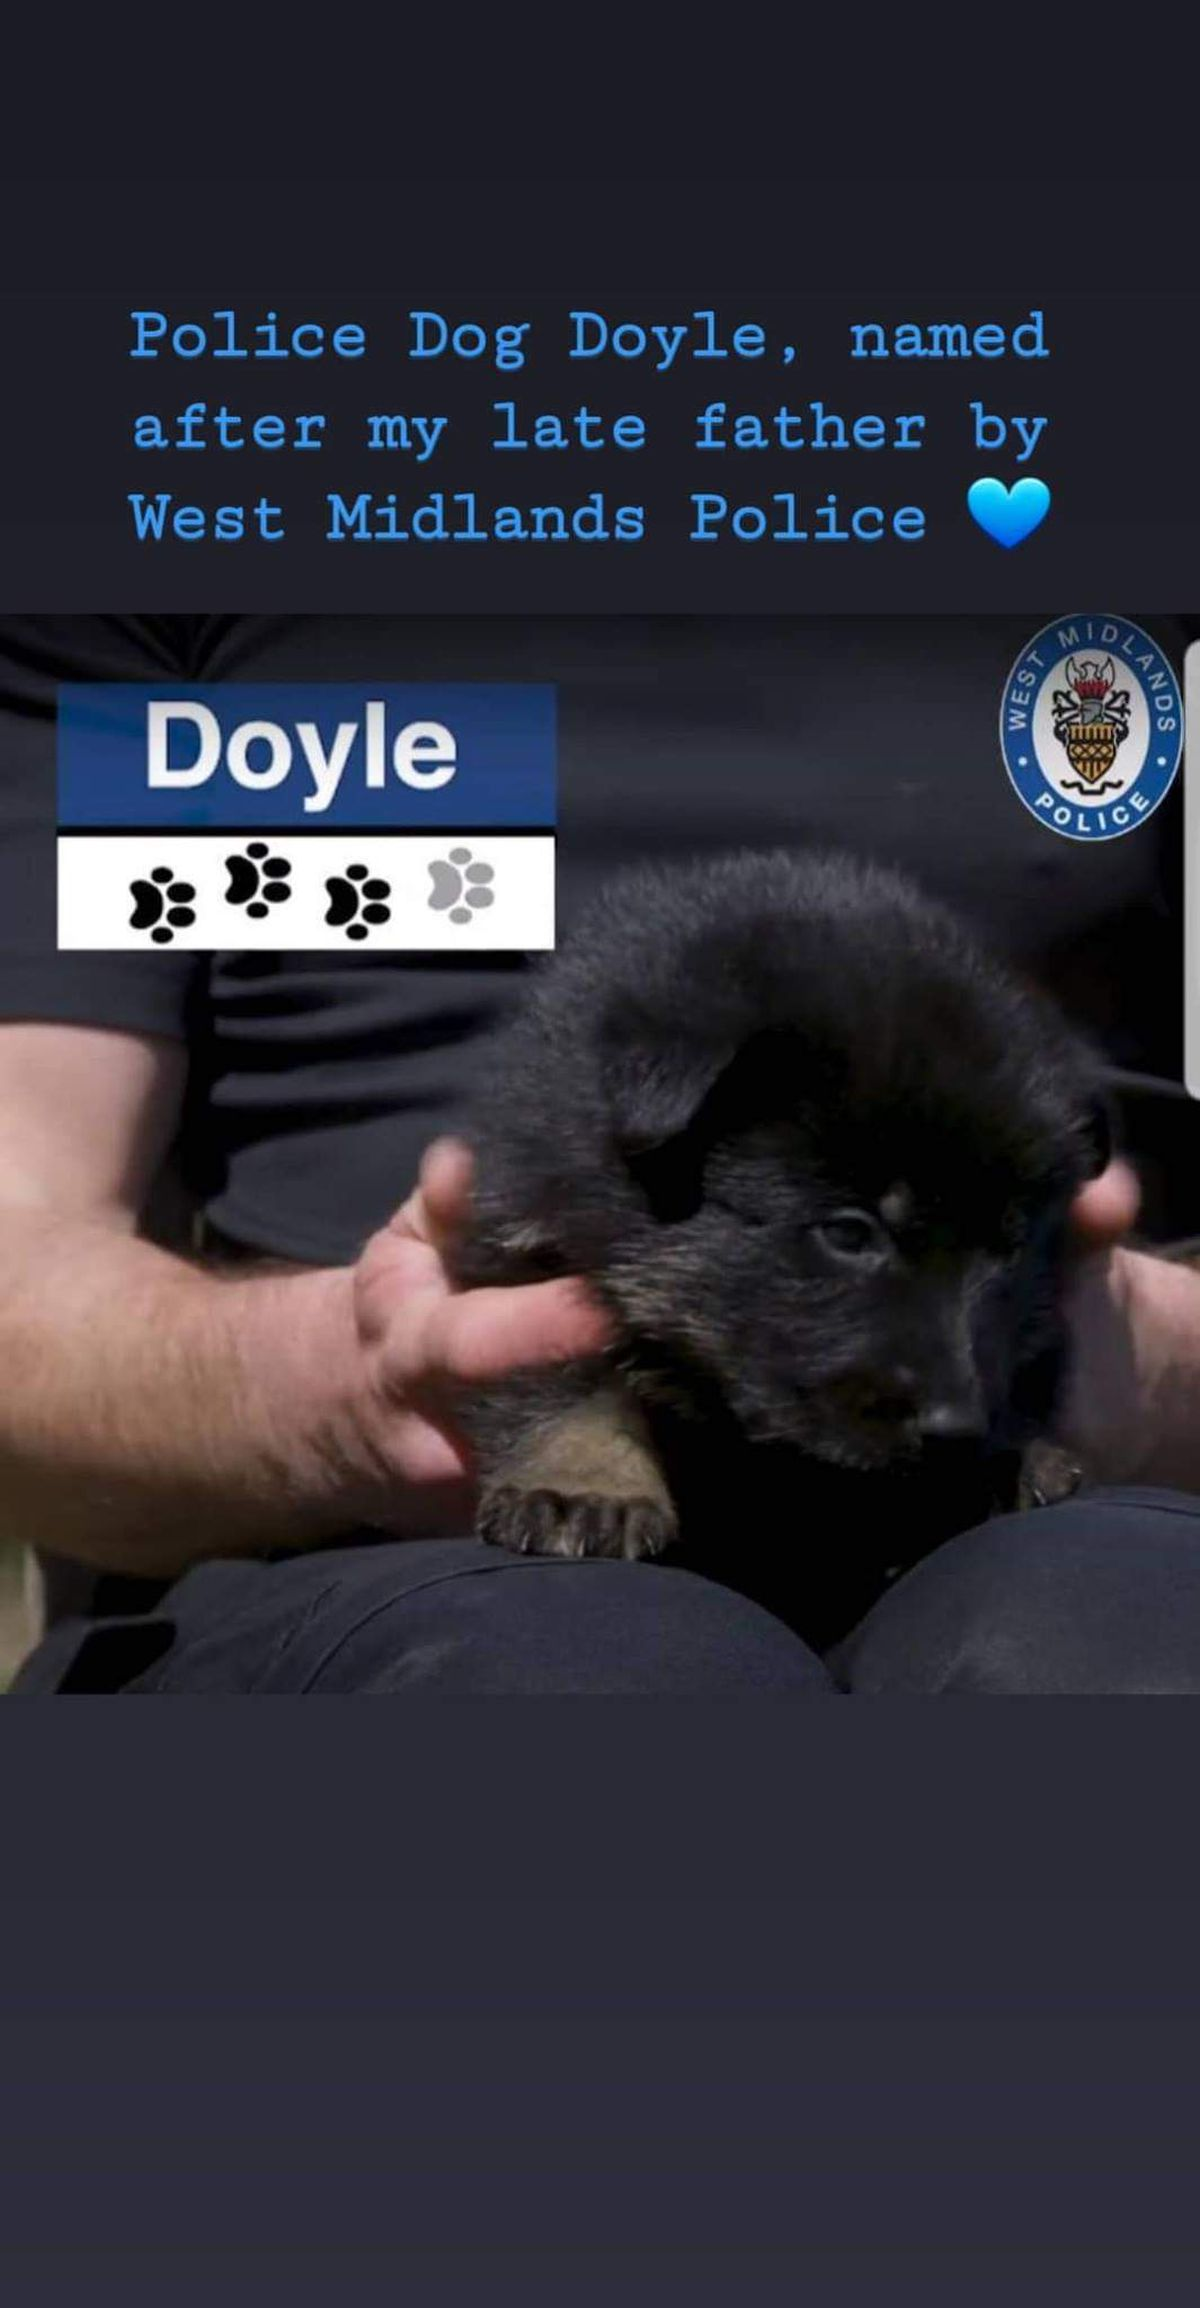 Police Dog Doyle